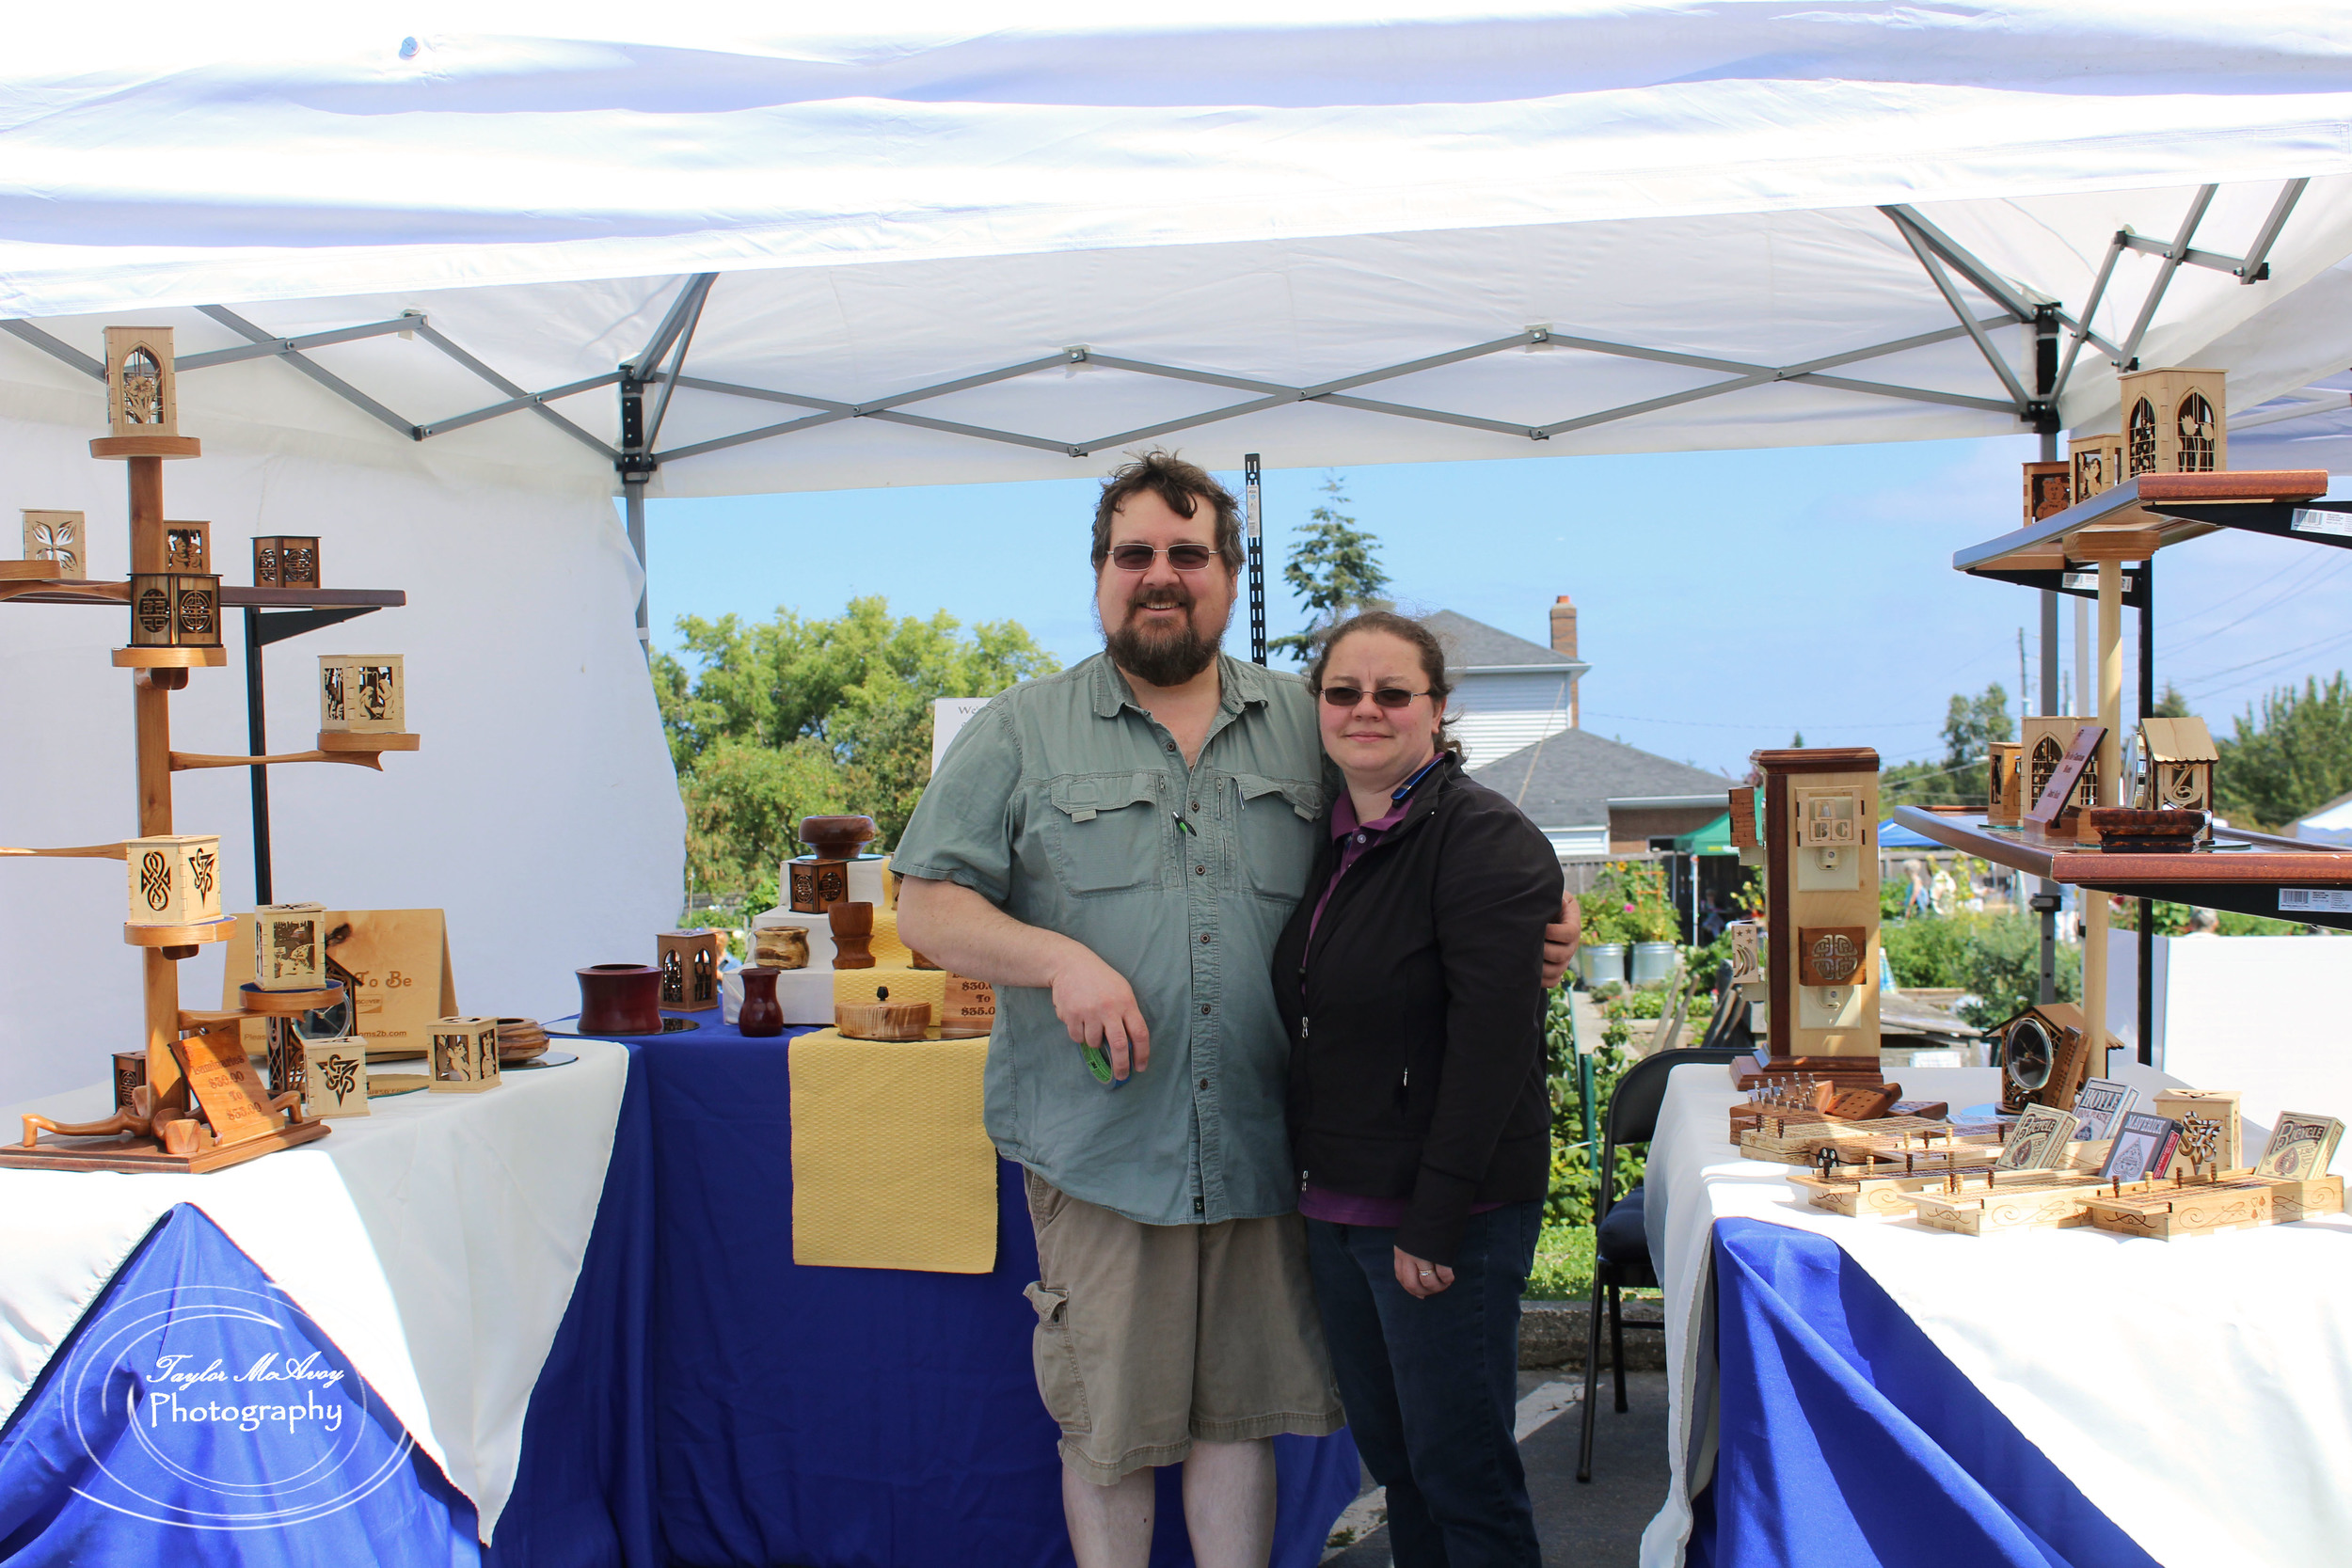 John Lateer and his wife Terri enjoyed their first year setting up their booth, Heirlooms To Be at the P-Patch.